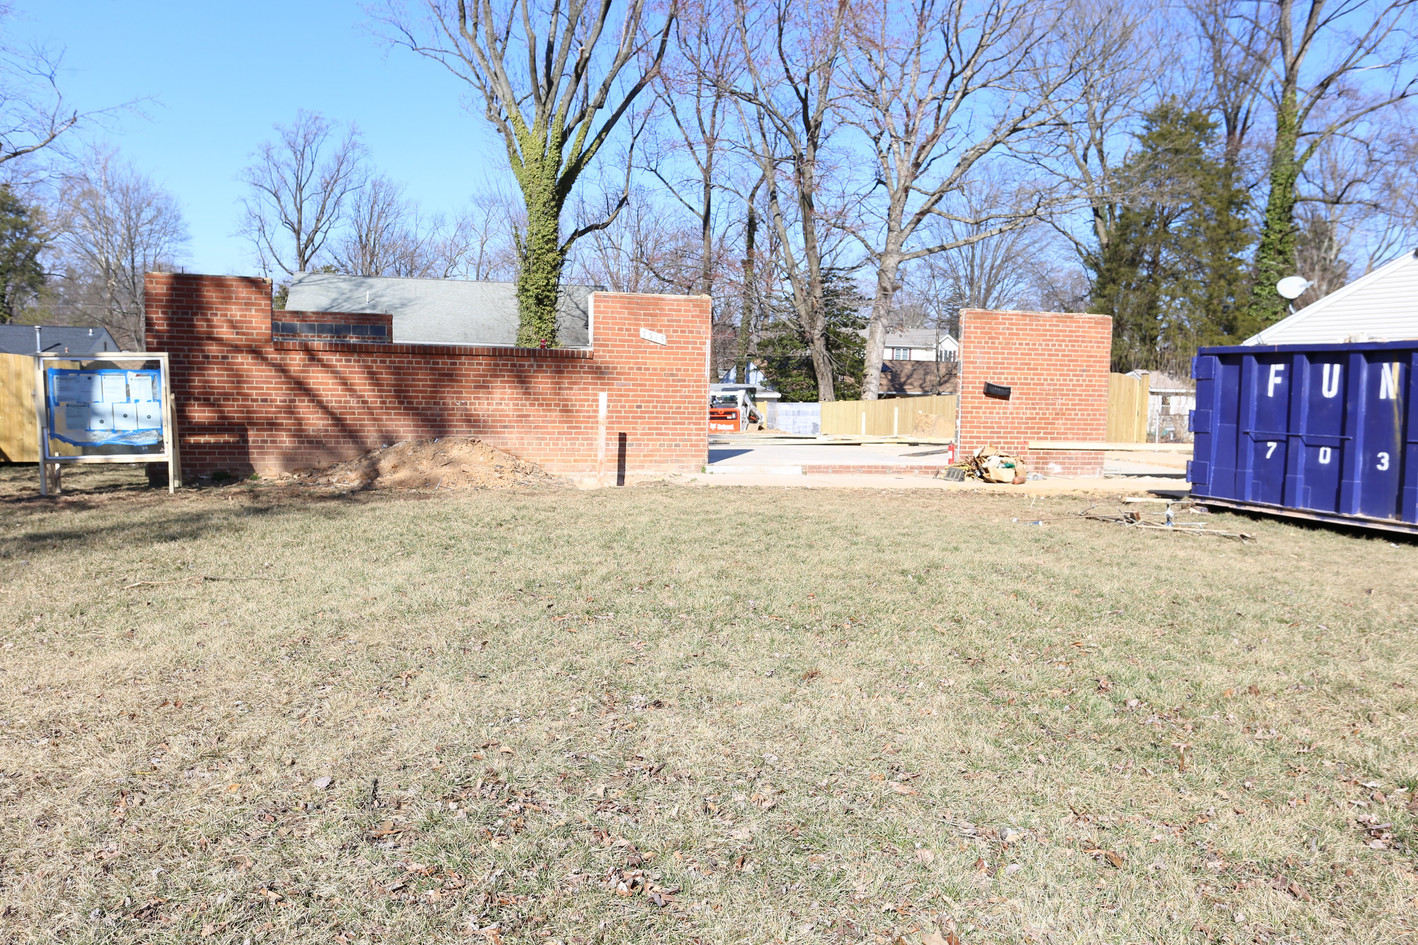 Before Picture of Residential Construction